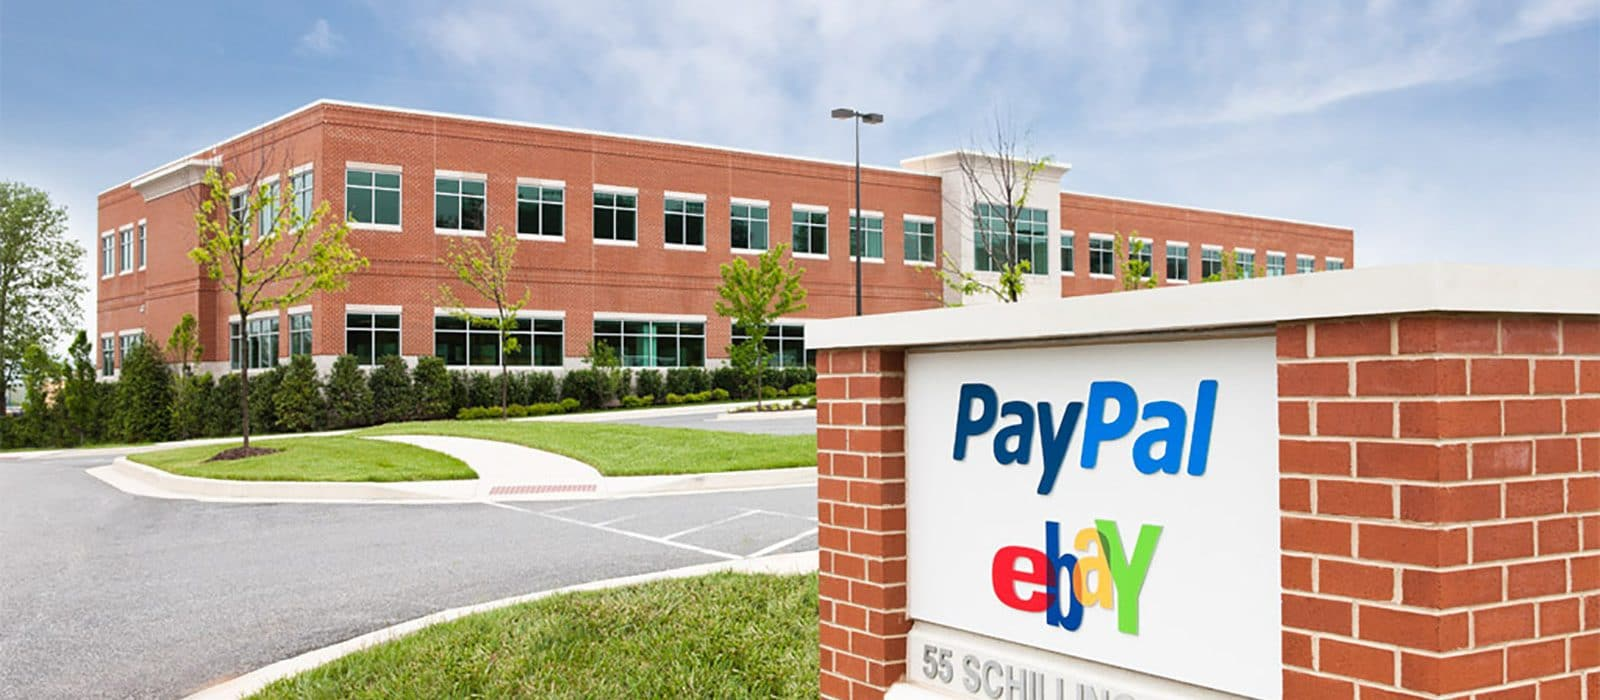 eBay and PayPal Tenant Fit-Outs Exterior